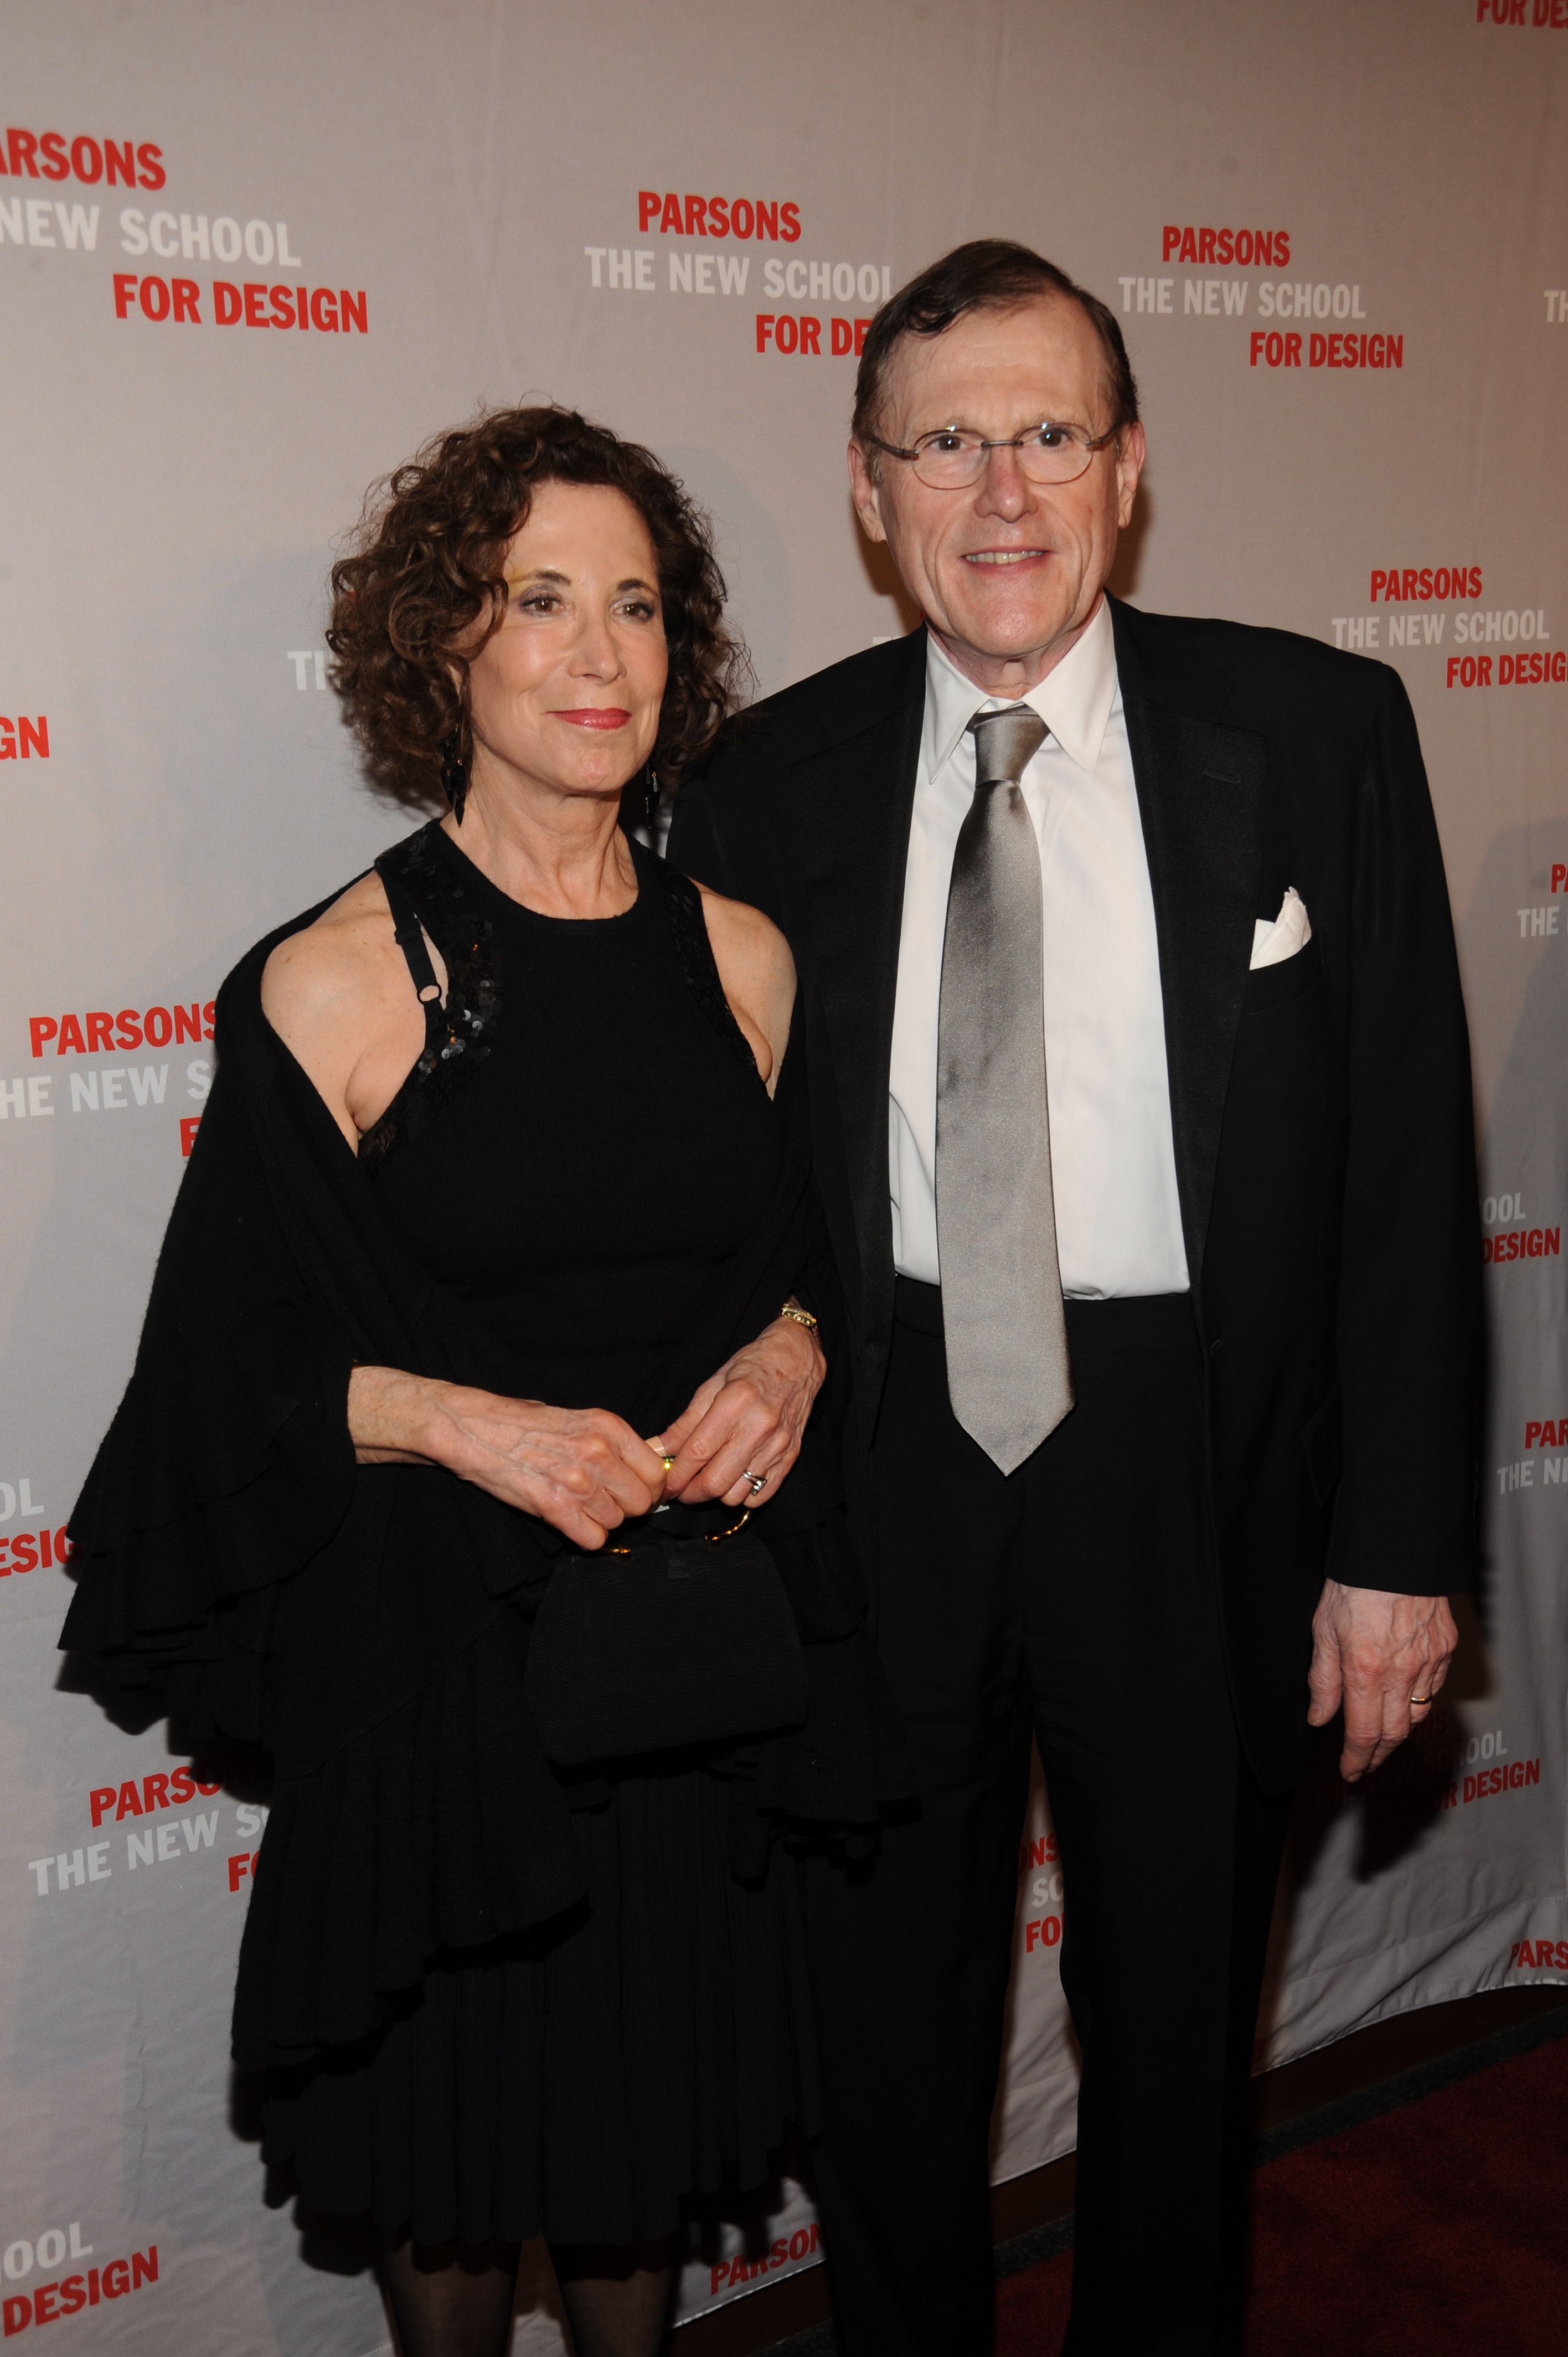 Sheila Aronson (L) and Arnold Aronson attend Parsons 2010 Fashion Benefit.Parsons 2010 Fashion Benefit, New York